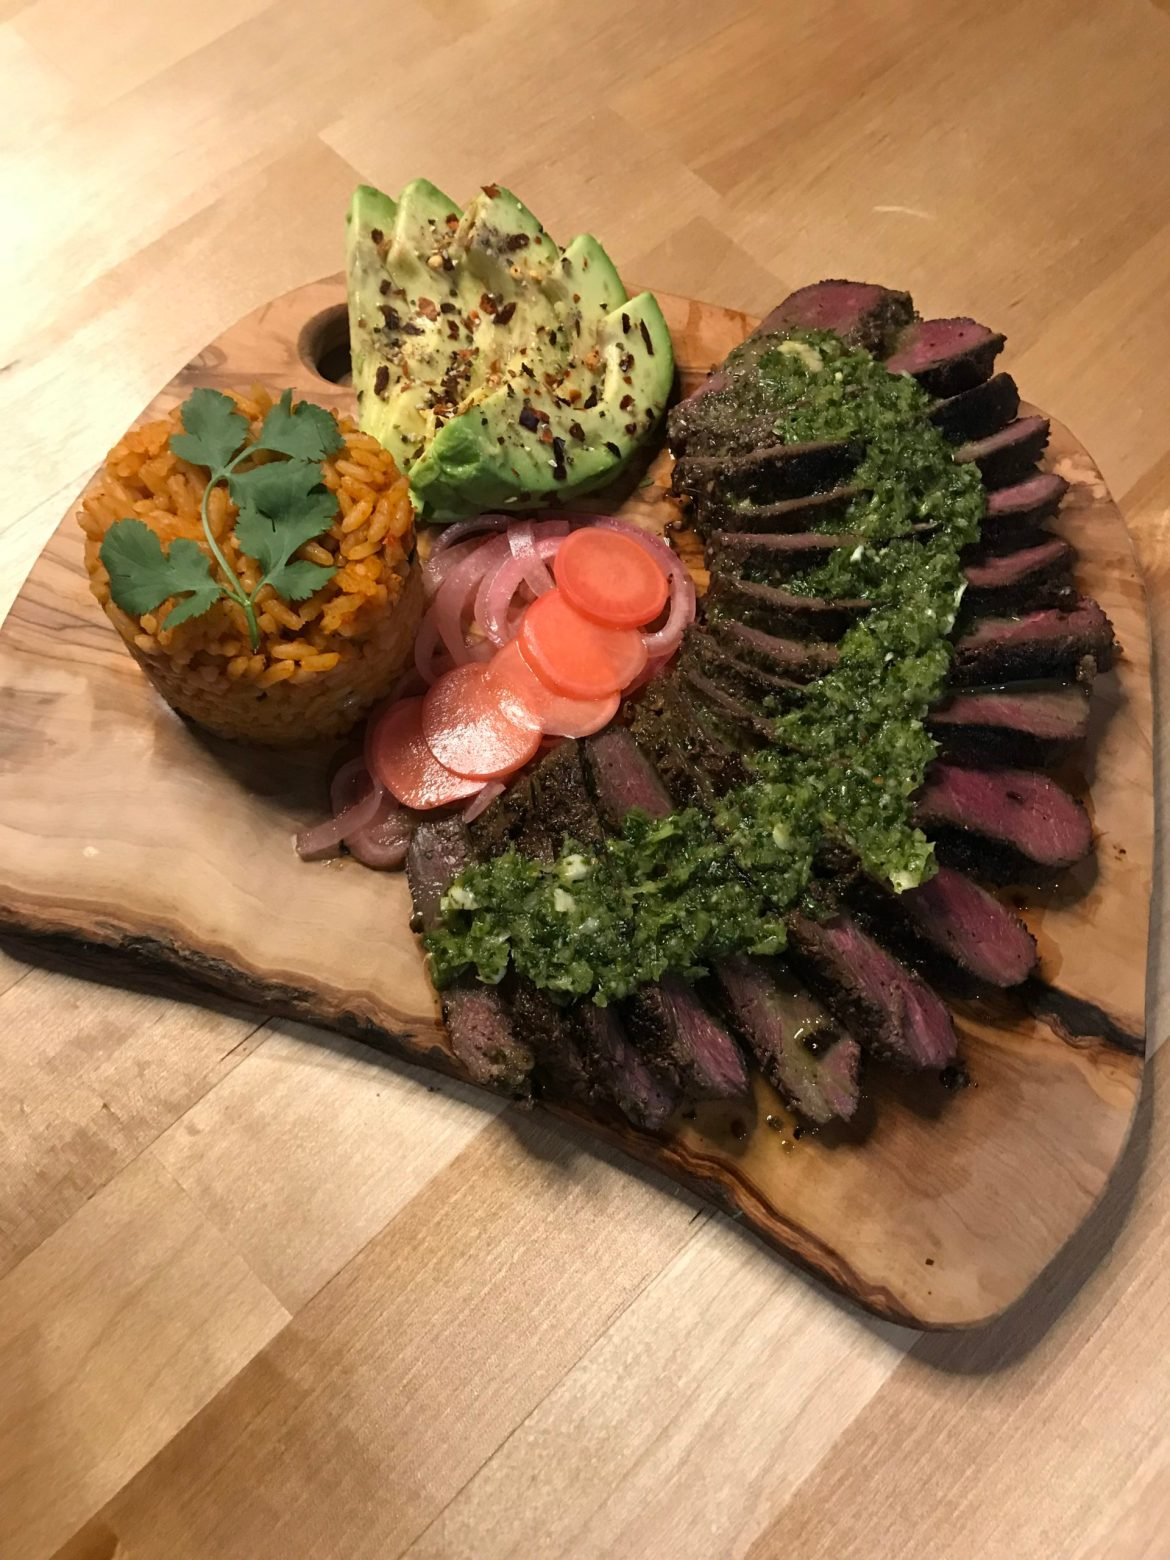 carne asada goose a meant and cheese board of wild game, cheese, avacado and veg that will keep you coming back for more